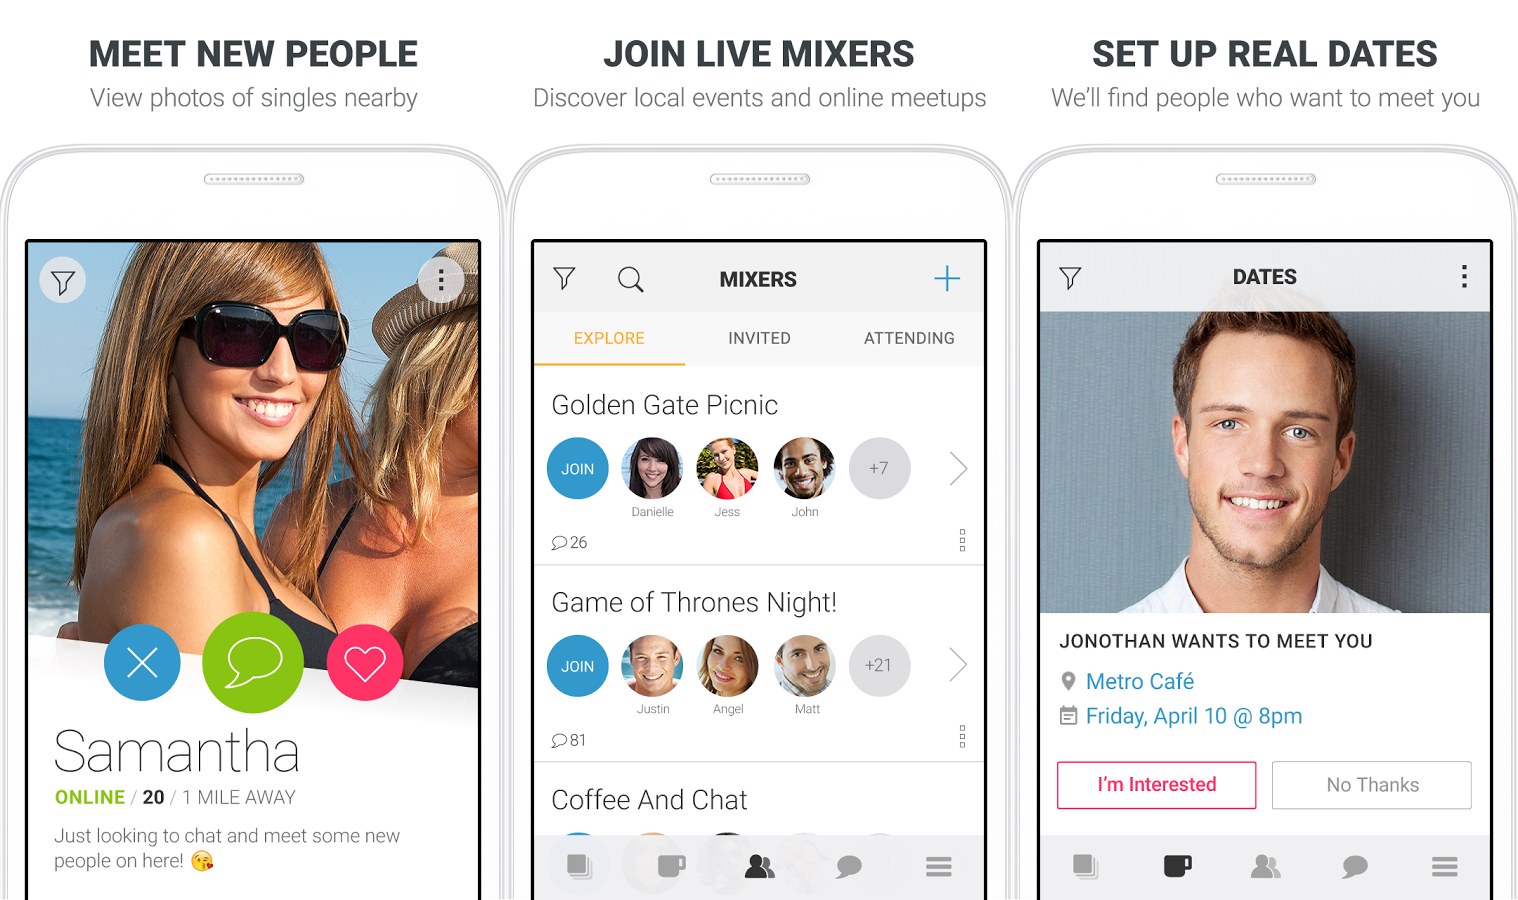 Clover tries to combine multiple dating apps into one. The big feature with  Clover is free chats. You can set up dates, join mixers, and find local  meetups.